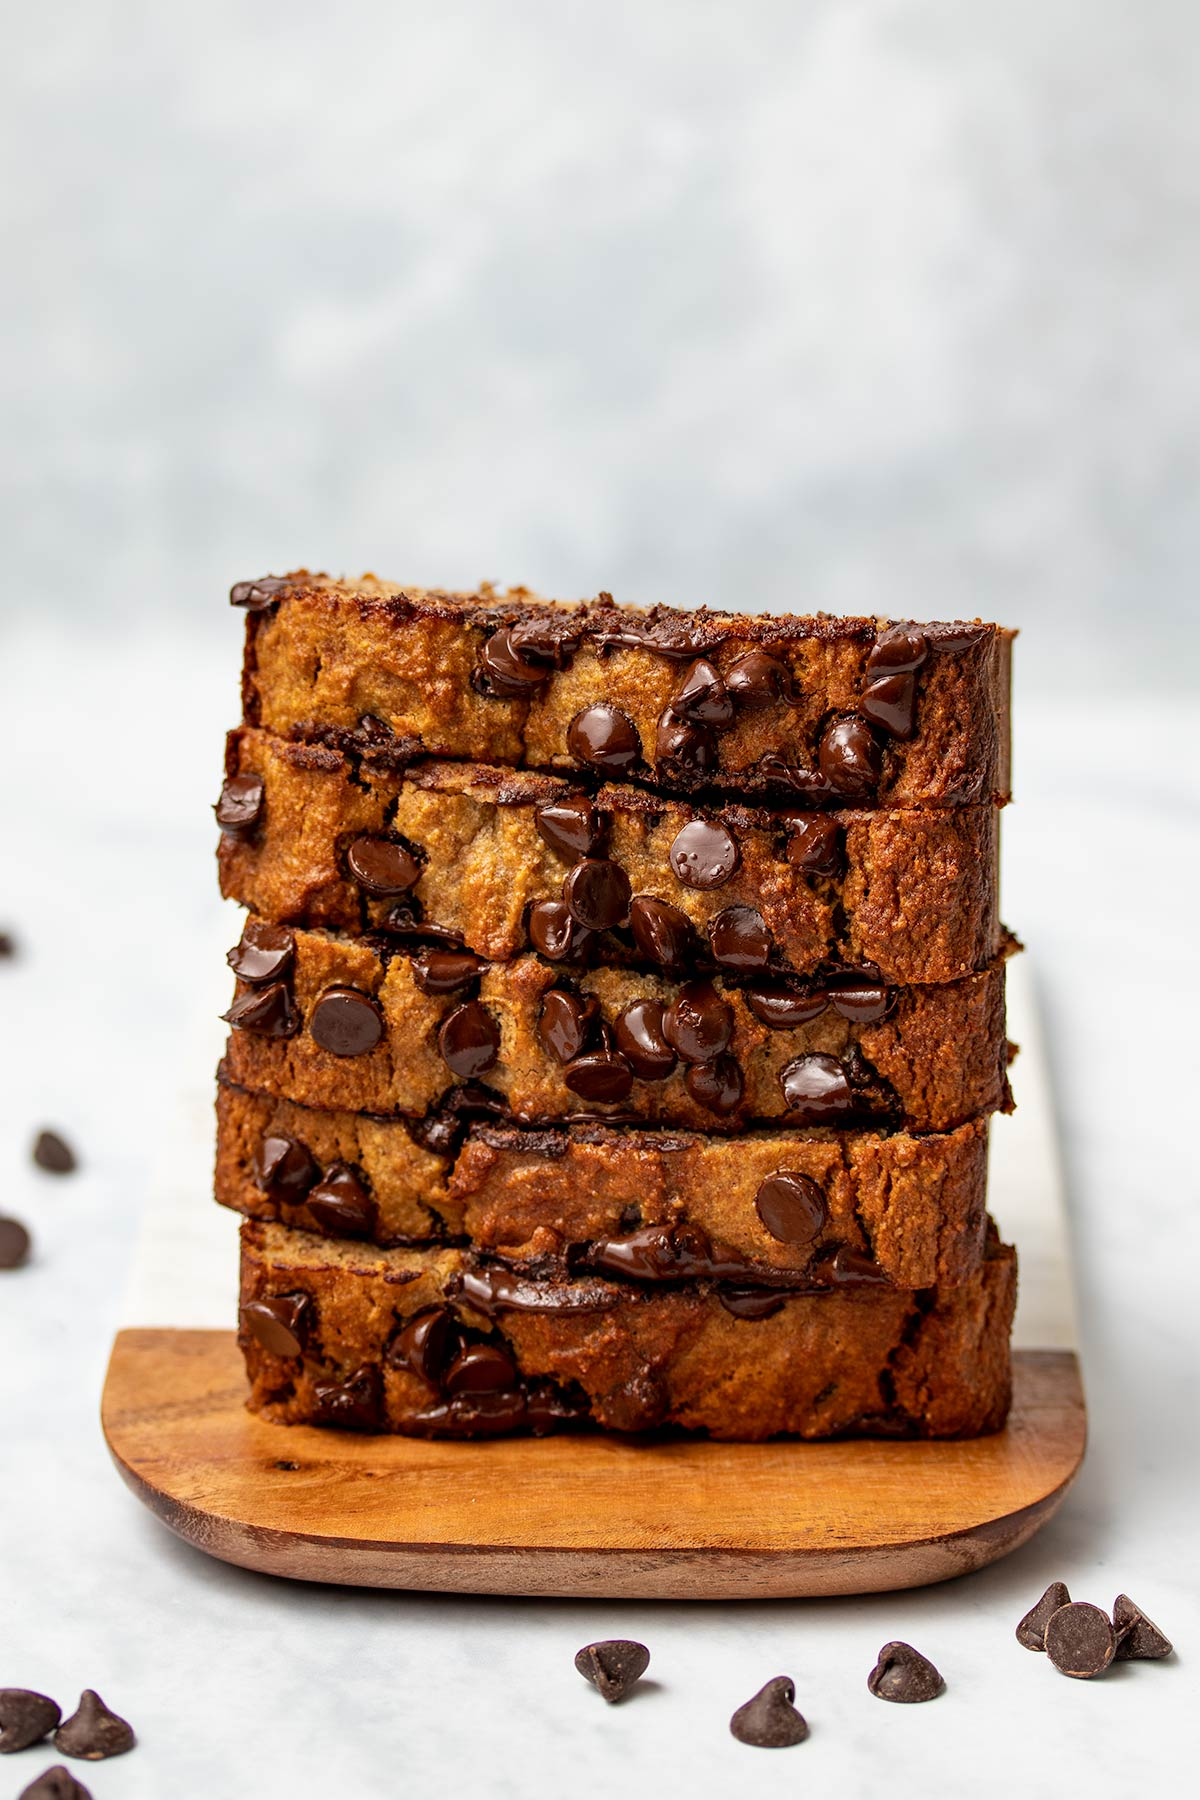 Slices of almond flour banana bread stacked vertically on a wood and marble serving tray, with chocolate chips sprinkled in the foreground.